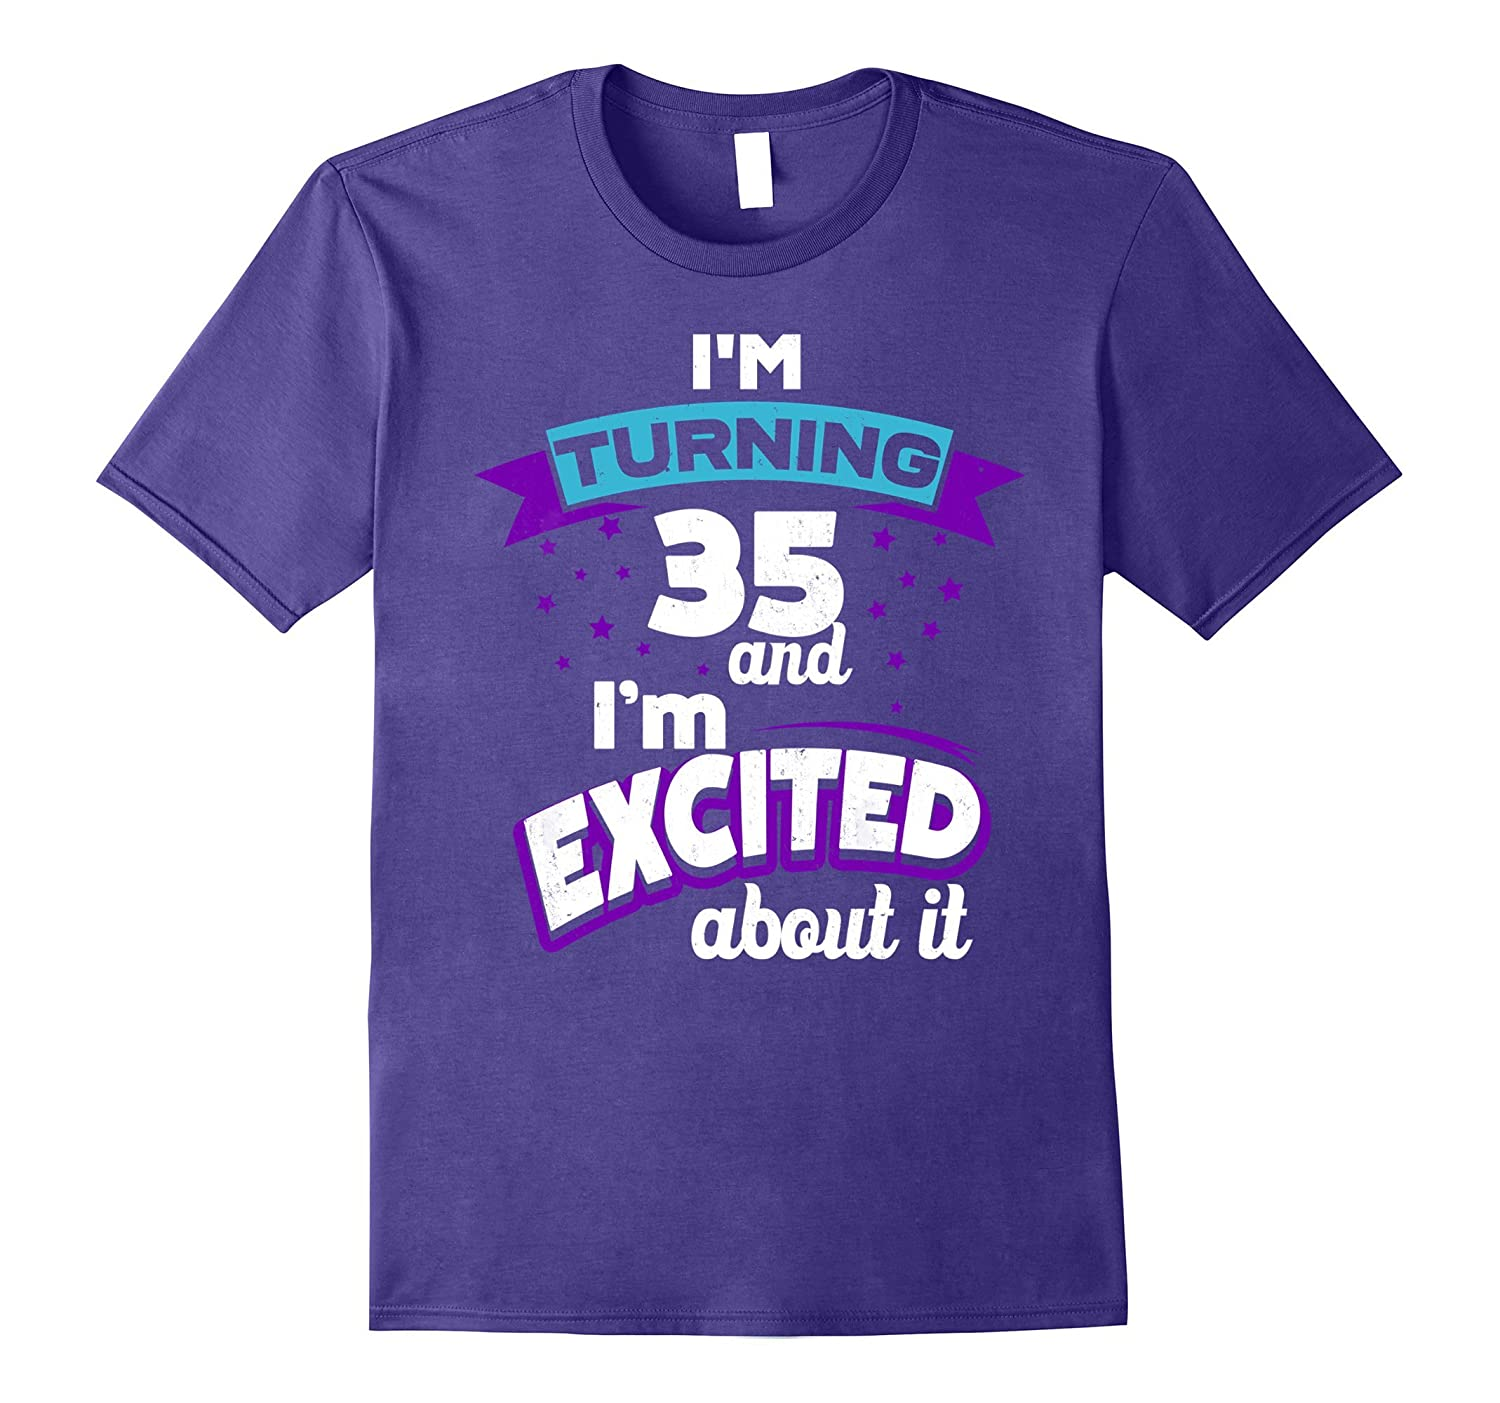 Gift for Turning 35 - Funny 35th Birthday Gift T-Shirt